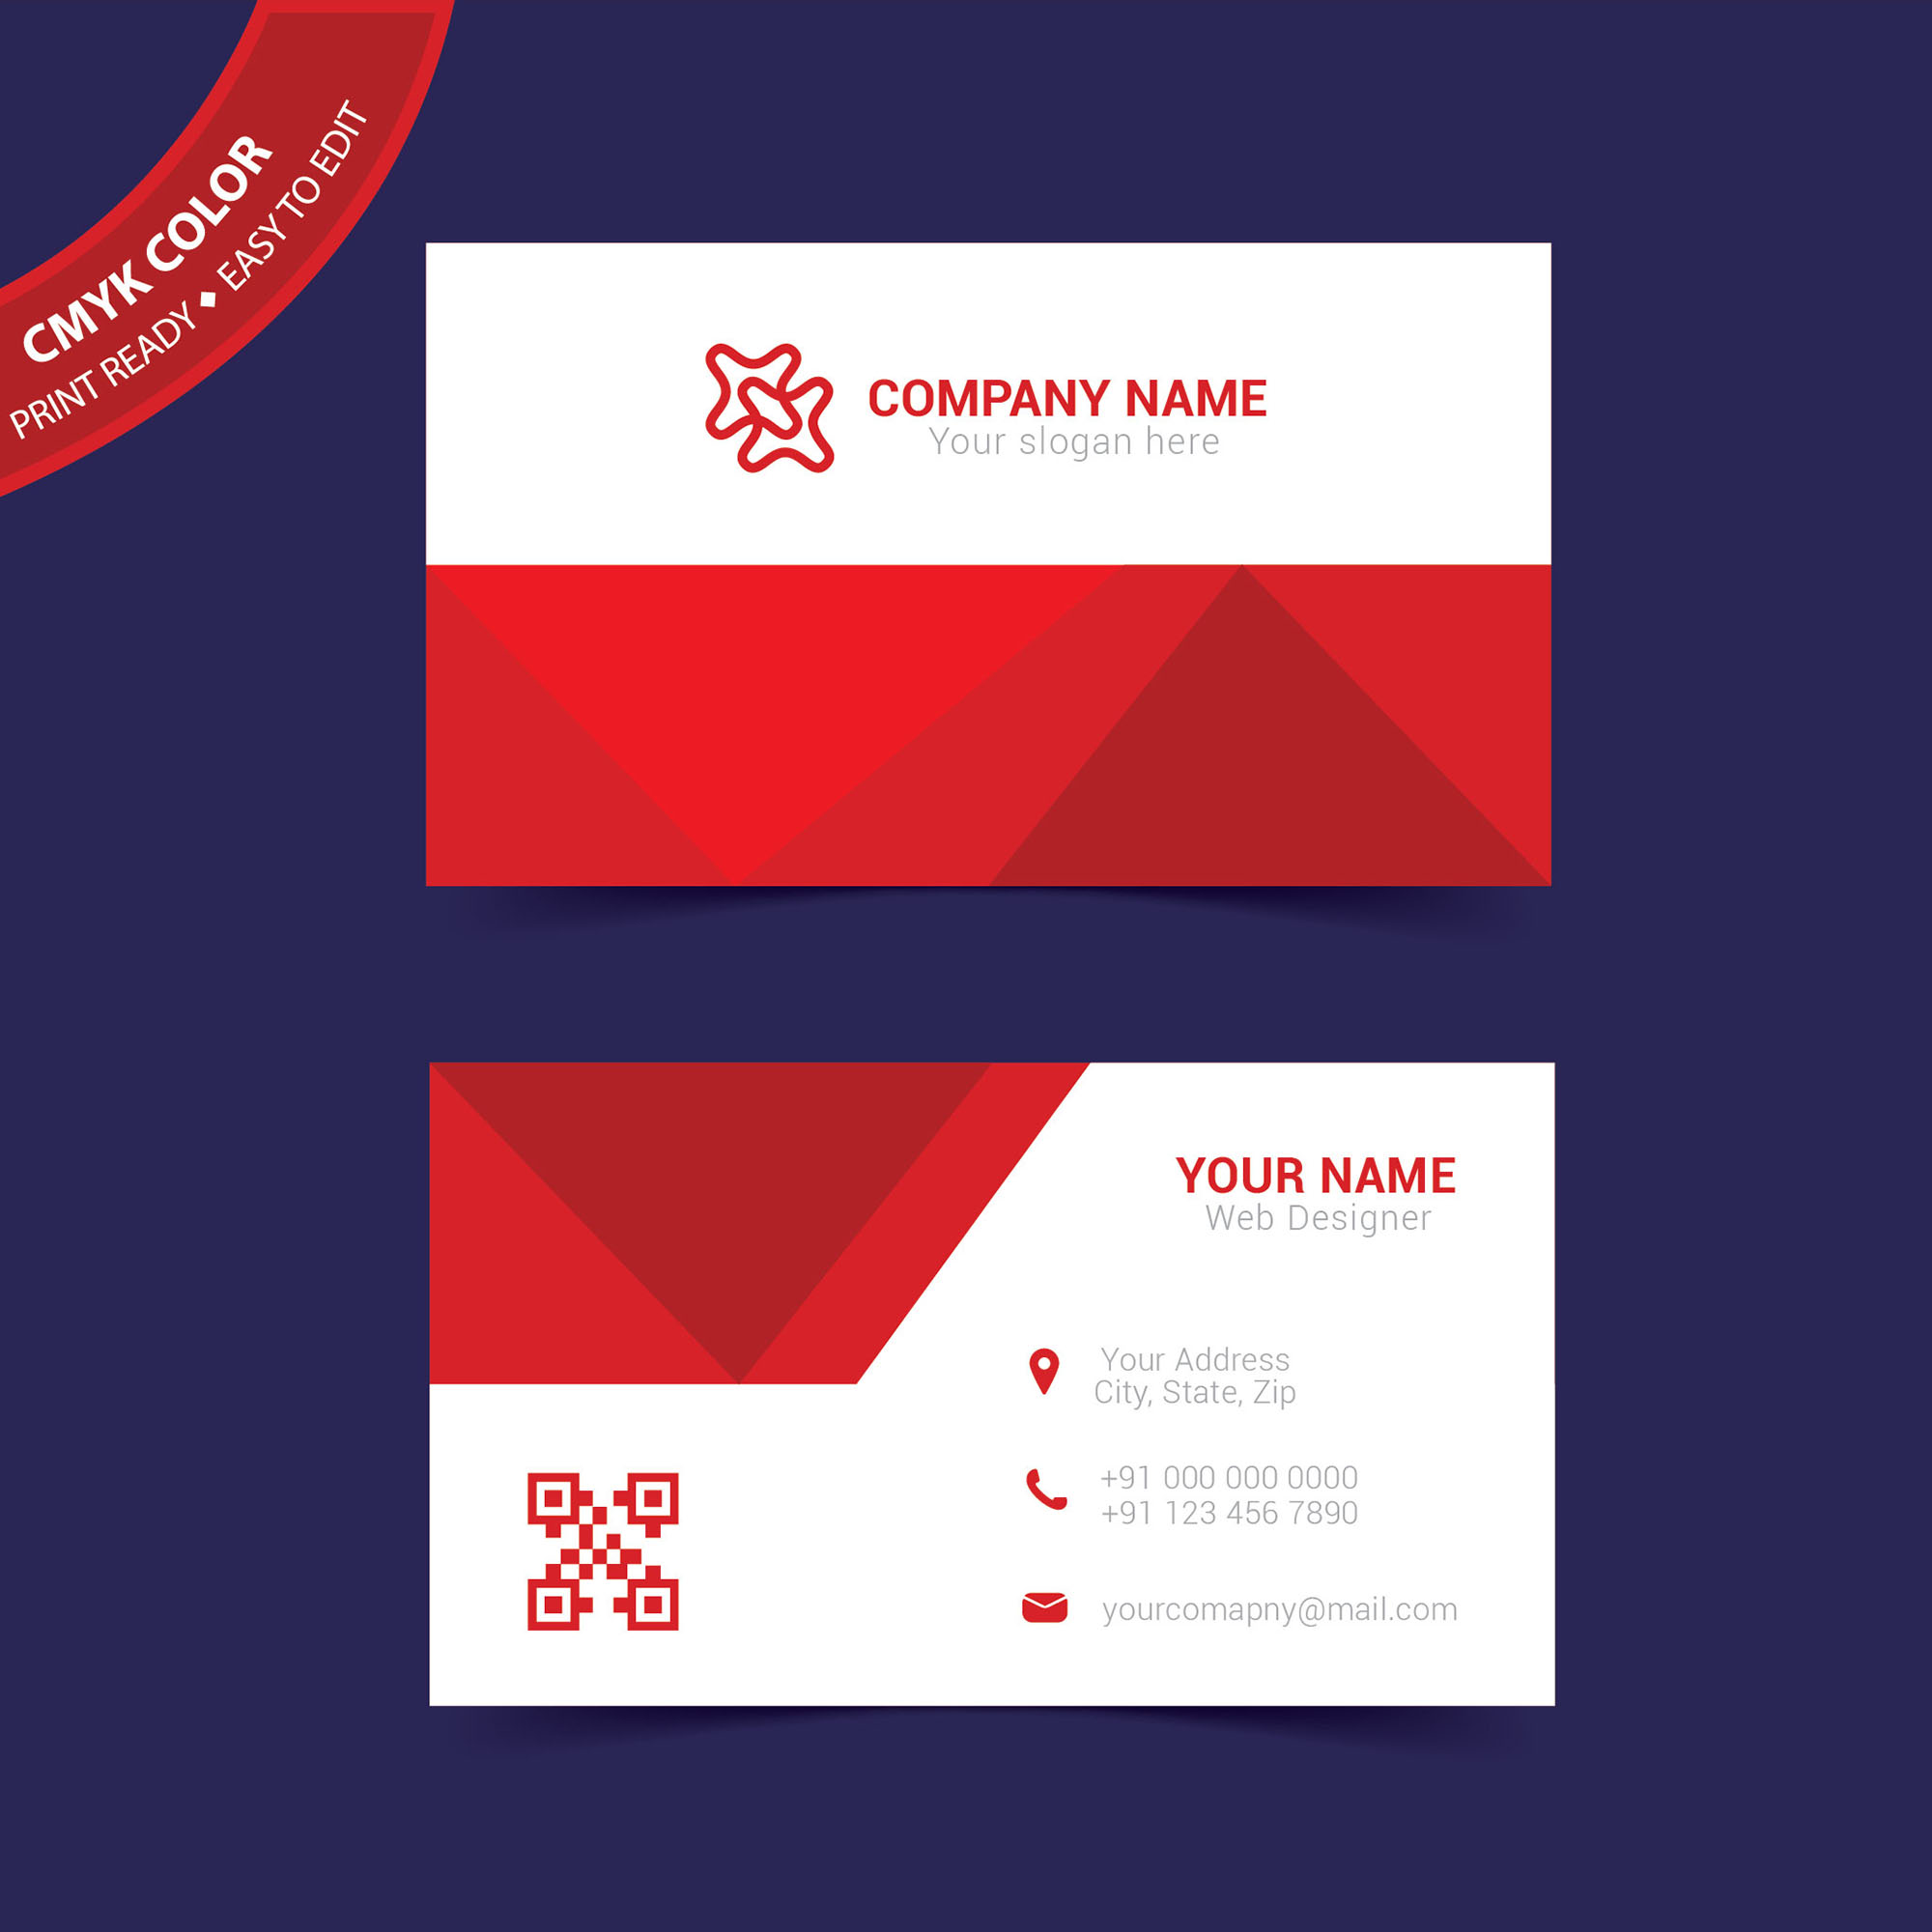 Business card print template free download wisxi business card business cards business card design business card template design templates accmission